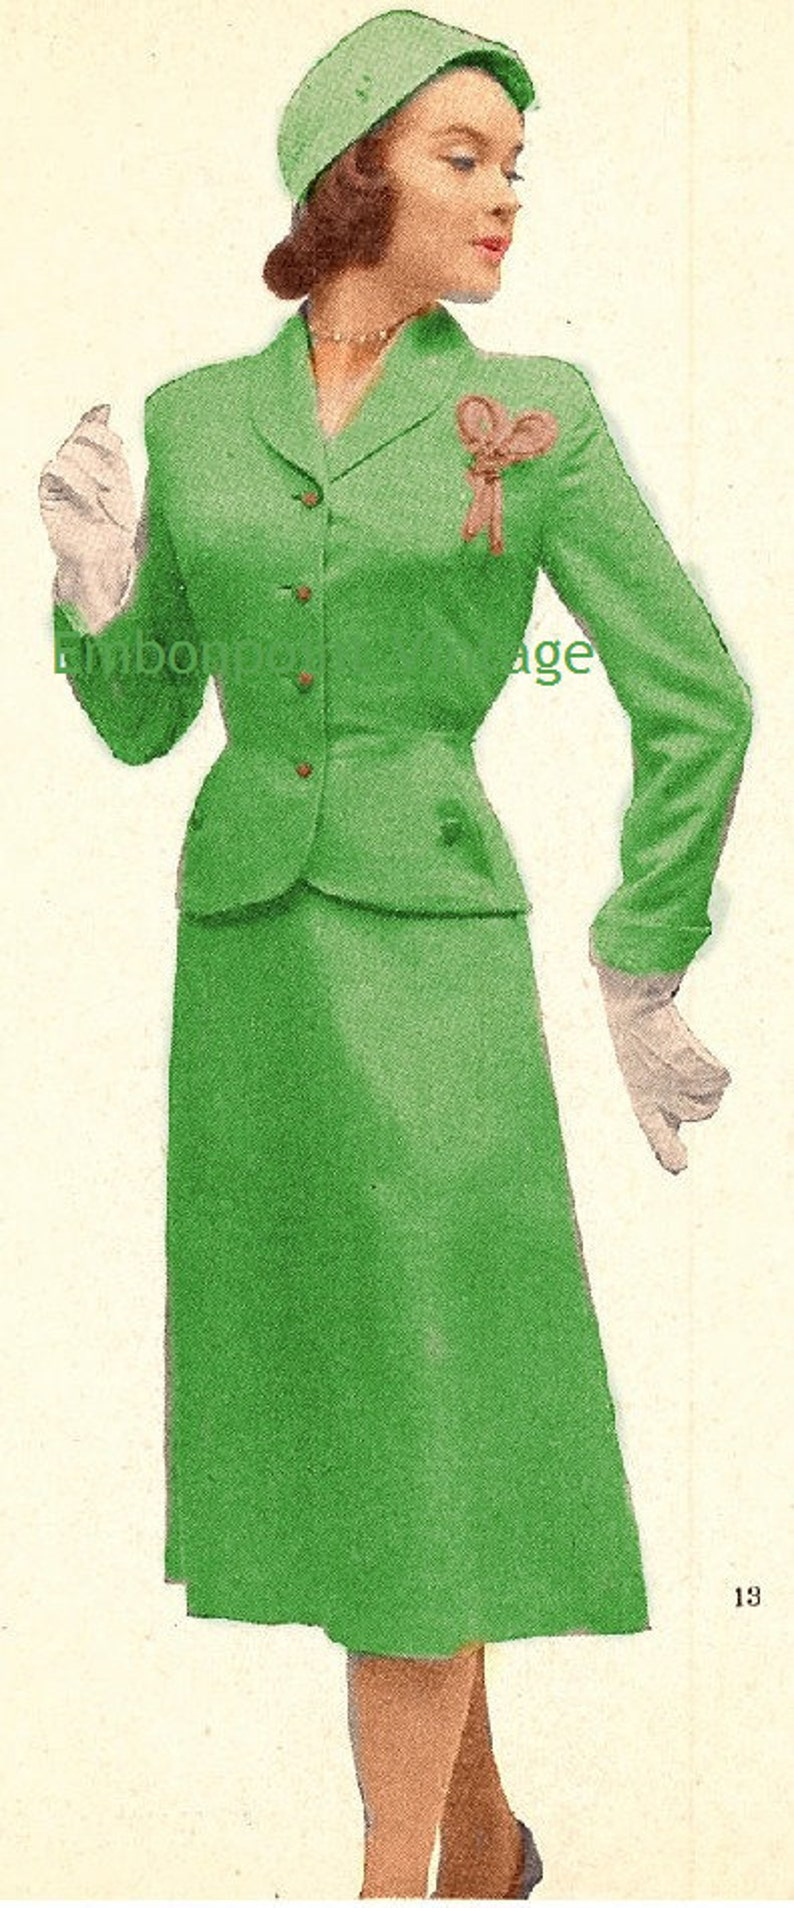 1940s Dresses | 40s Dress, Swing Dress Plus Size (or any size) Vintage 1949 Suit Sewing Pattern - PDF - Pattern No 13 Deloris $9.34 AT vintagedancer.com